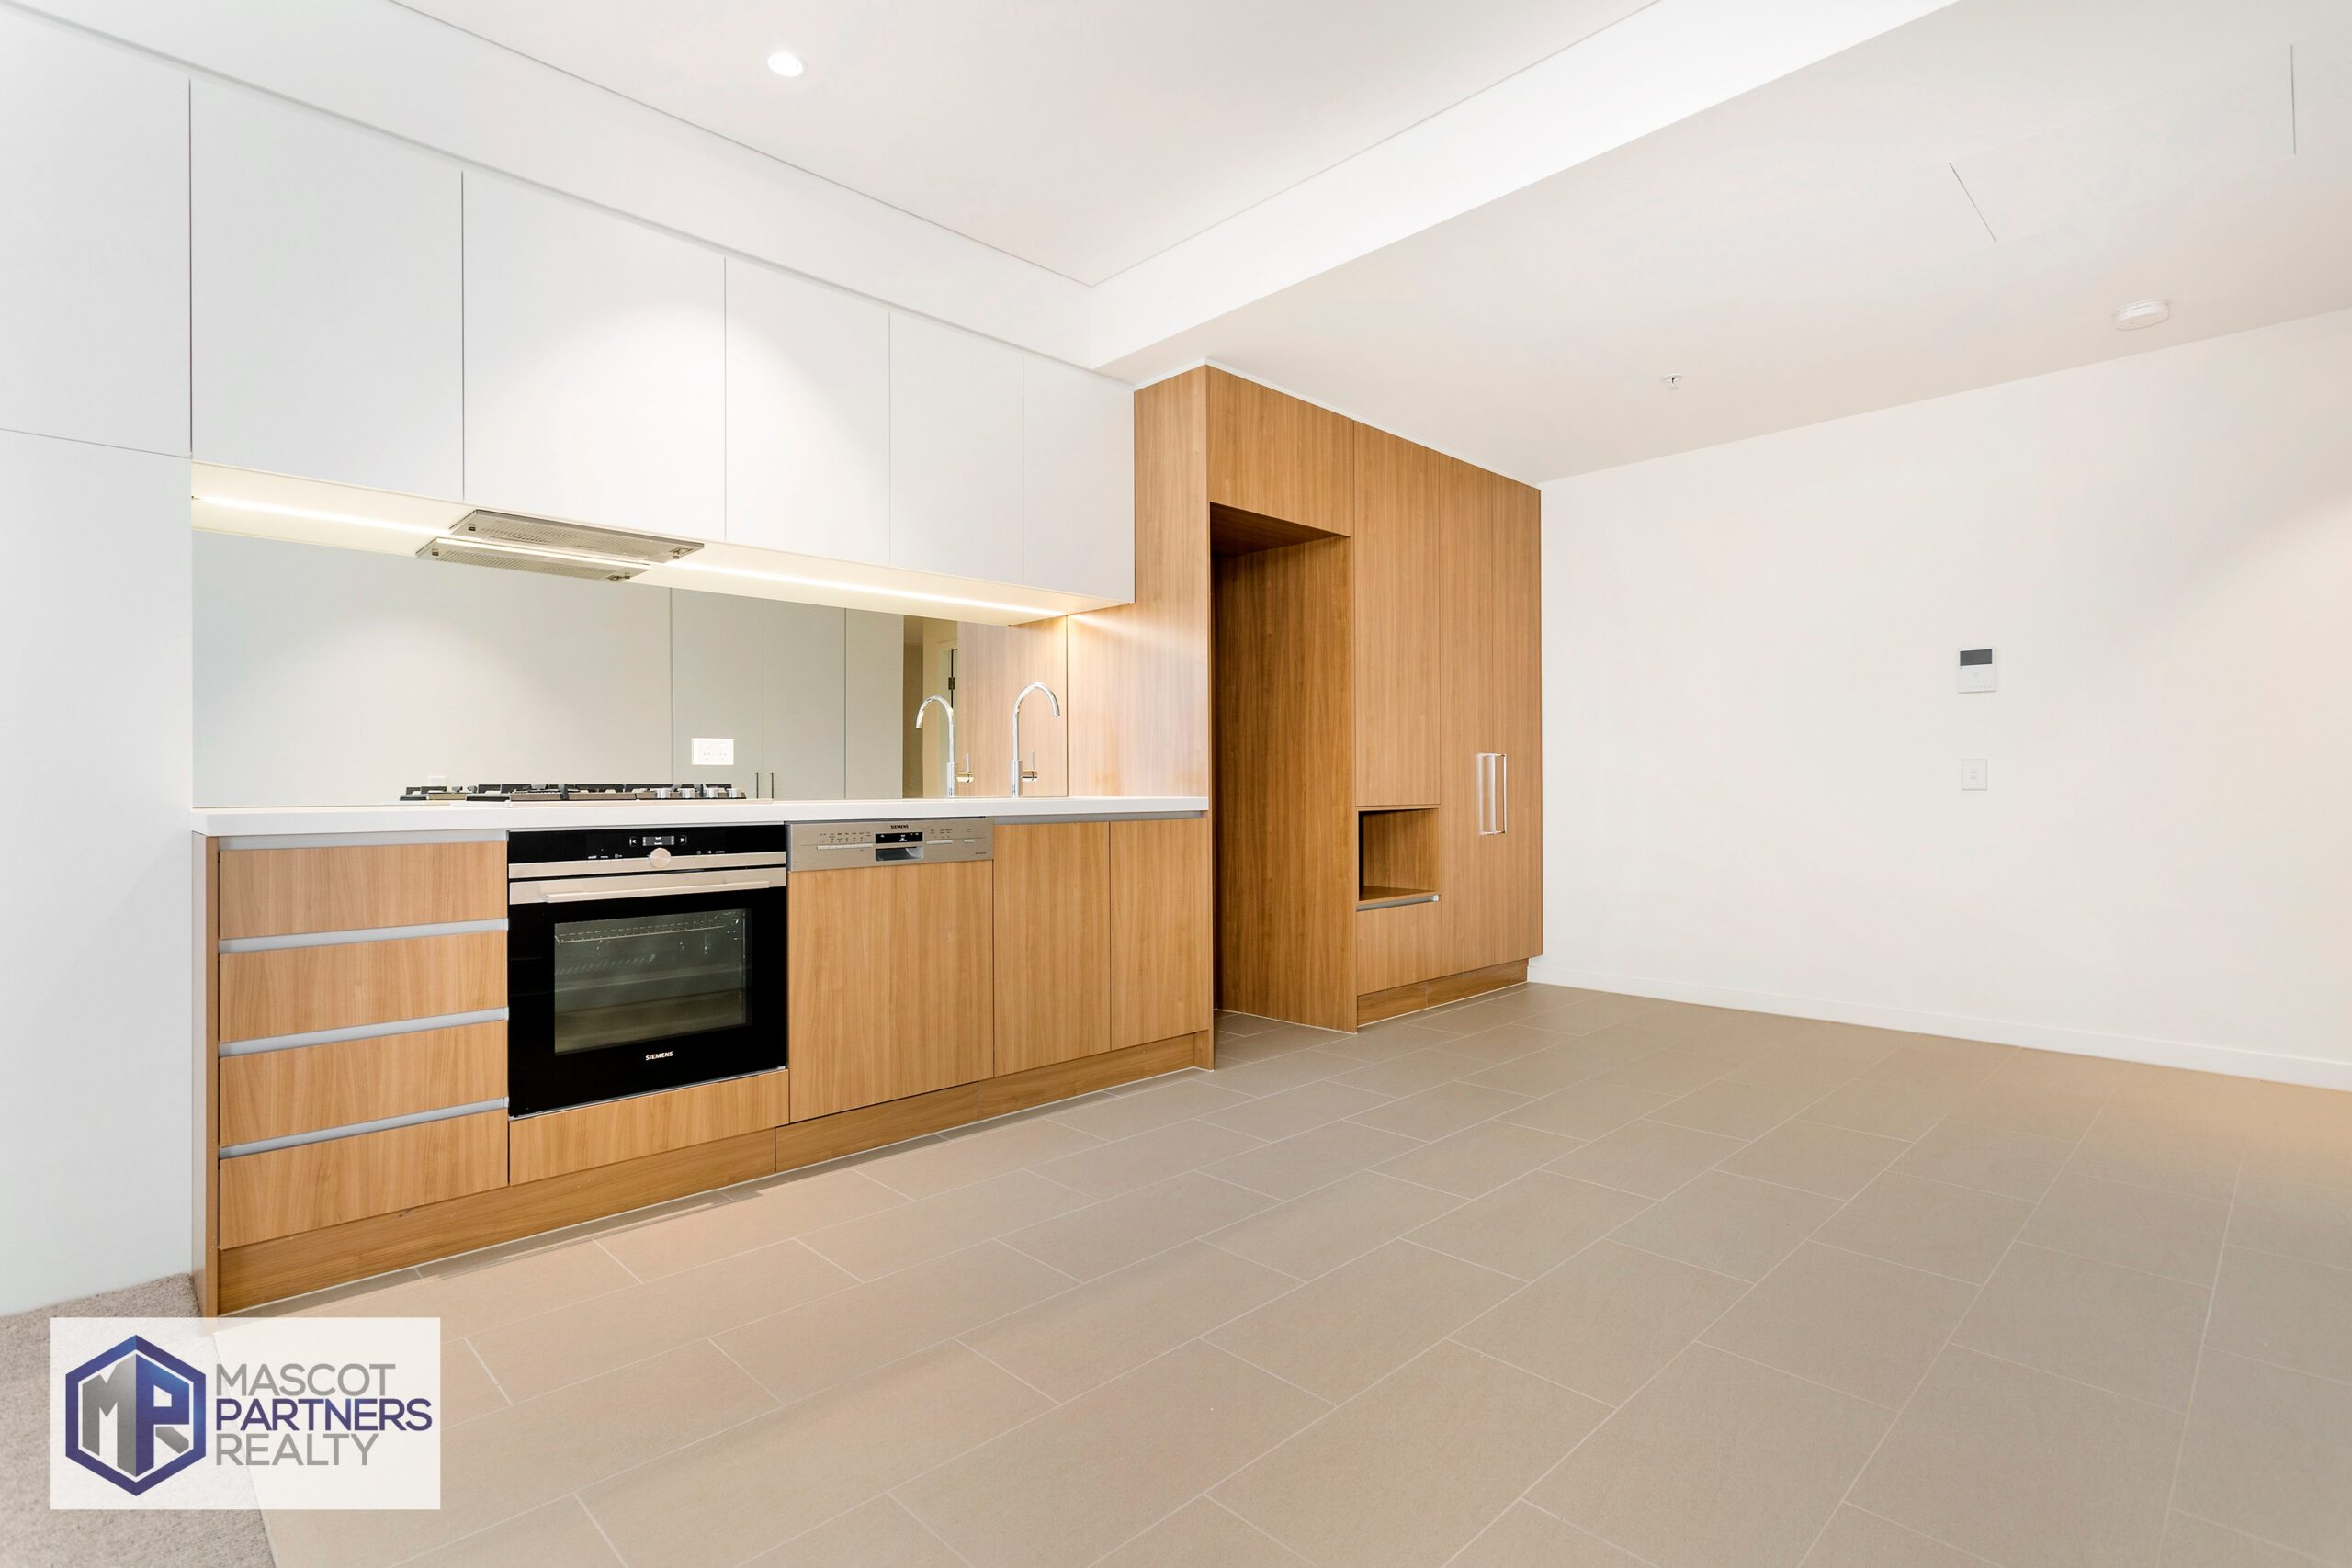 C806/5 Network Place, North Ryde NSW 2113 (LEASED)